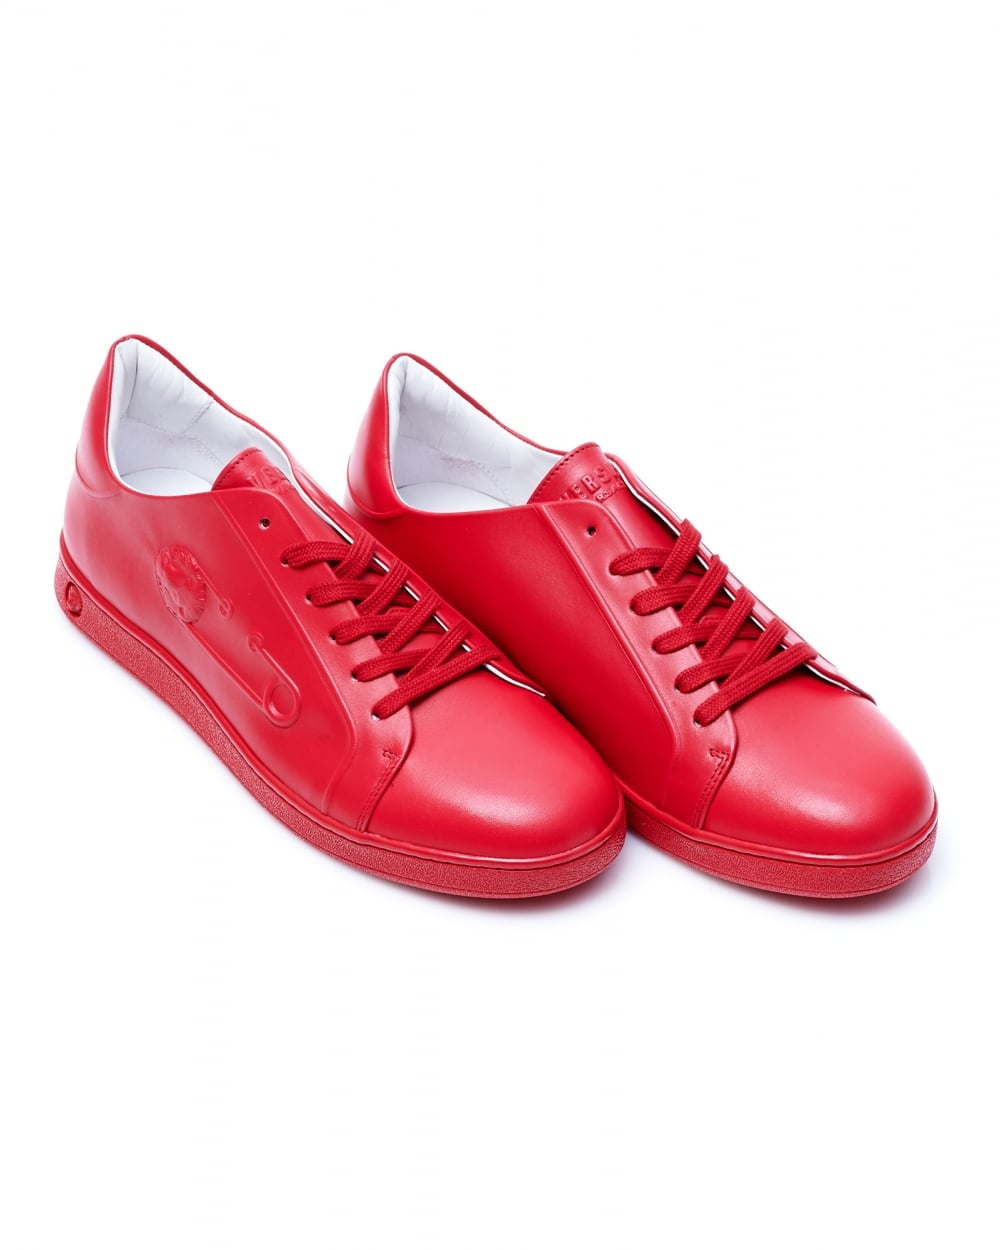 Mens Embossed Safety Pin Trainers Tonal Red Leather Sneakers